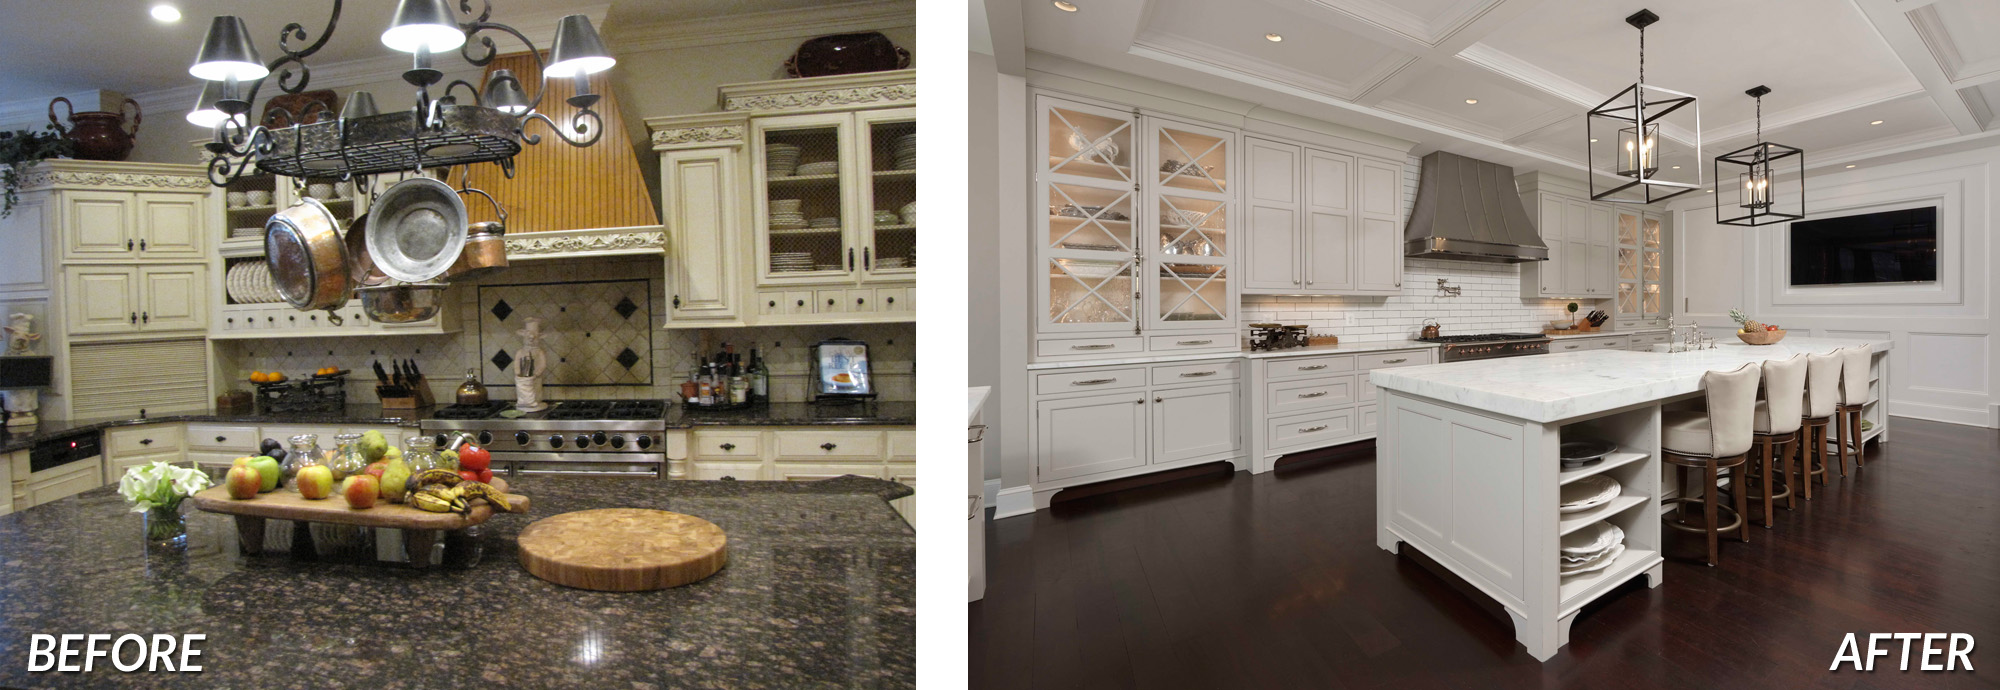 BOWA Design Design Build - Great Falls Virginia Kitchen Renovation Before & After